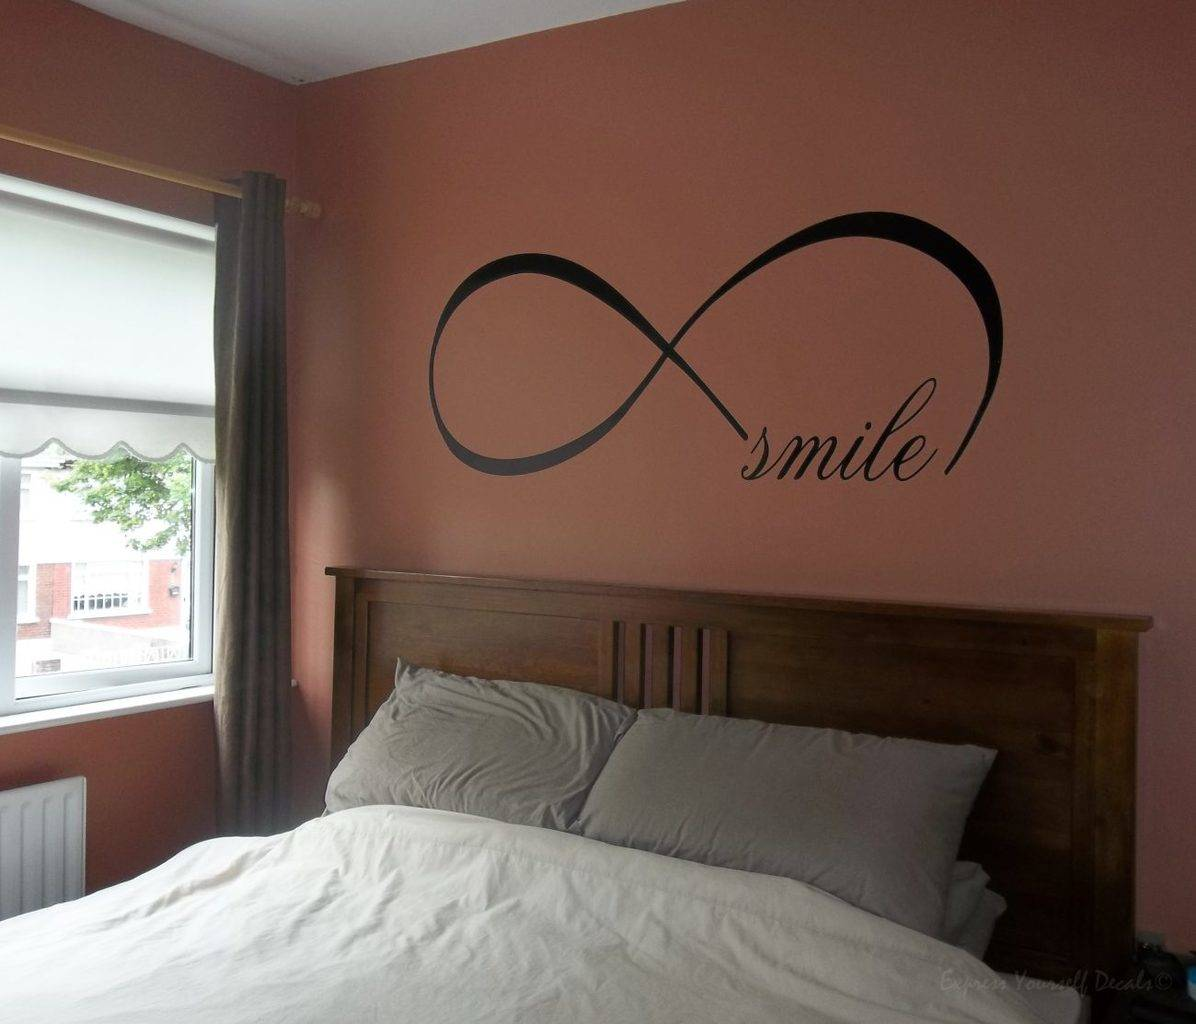 Infinity smile wall decal sticker